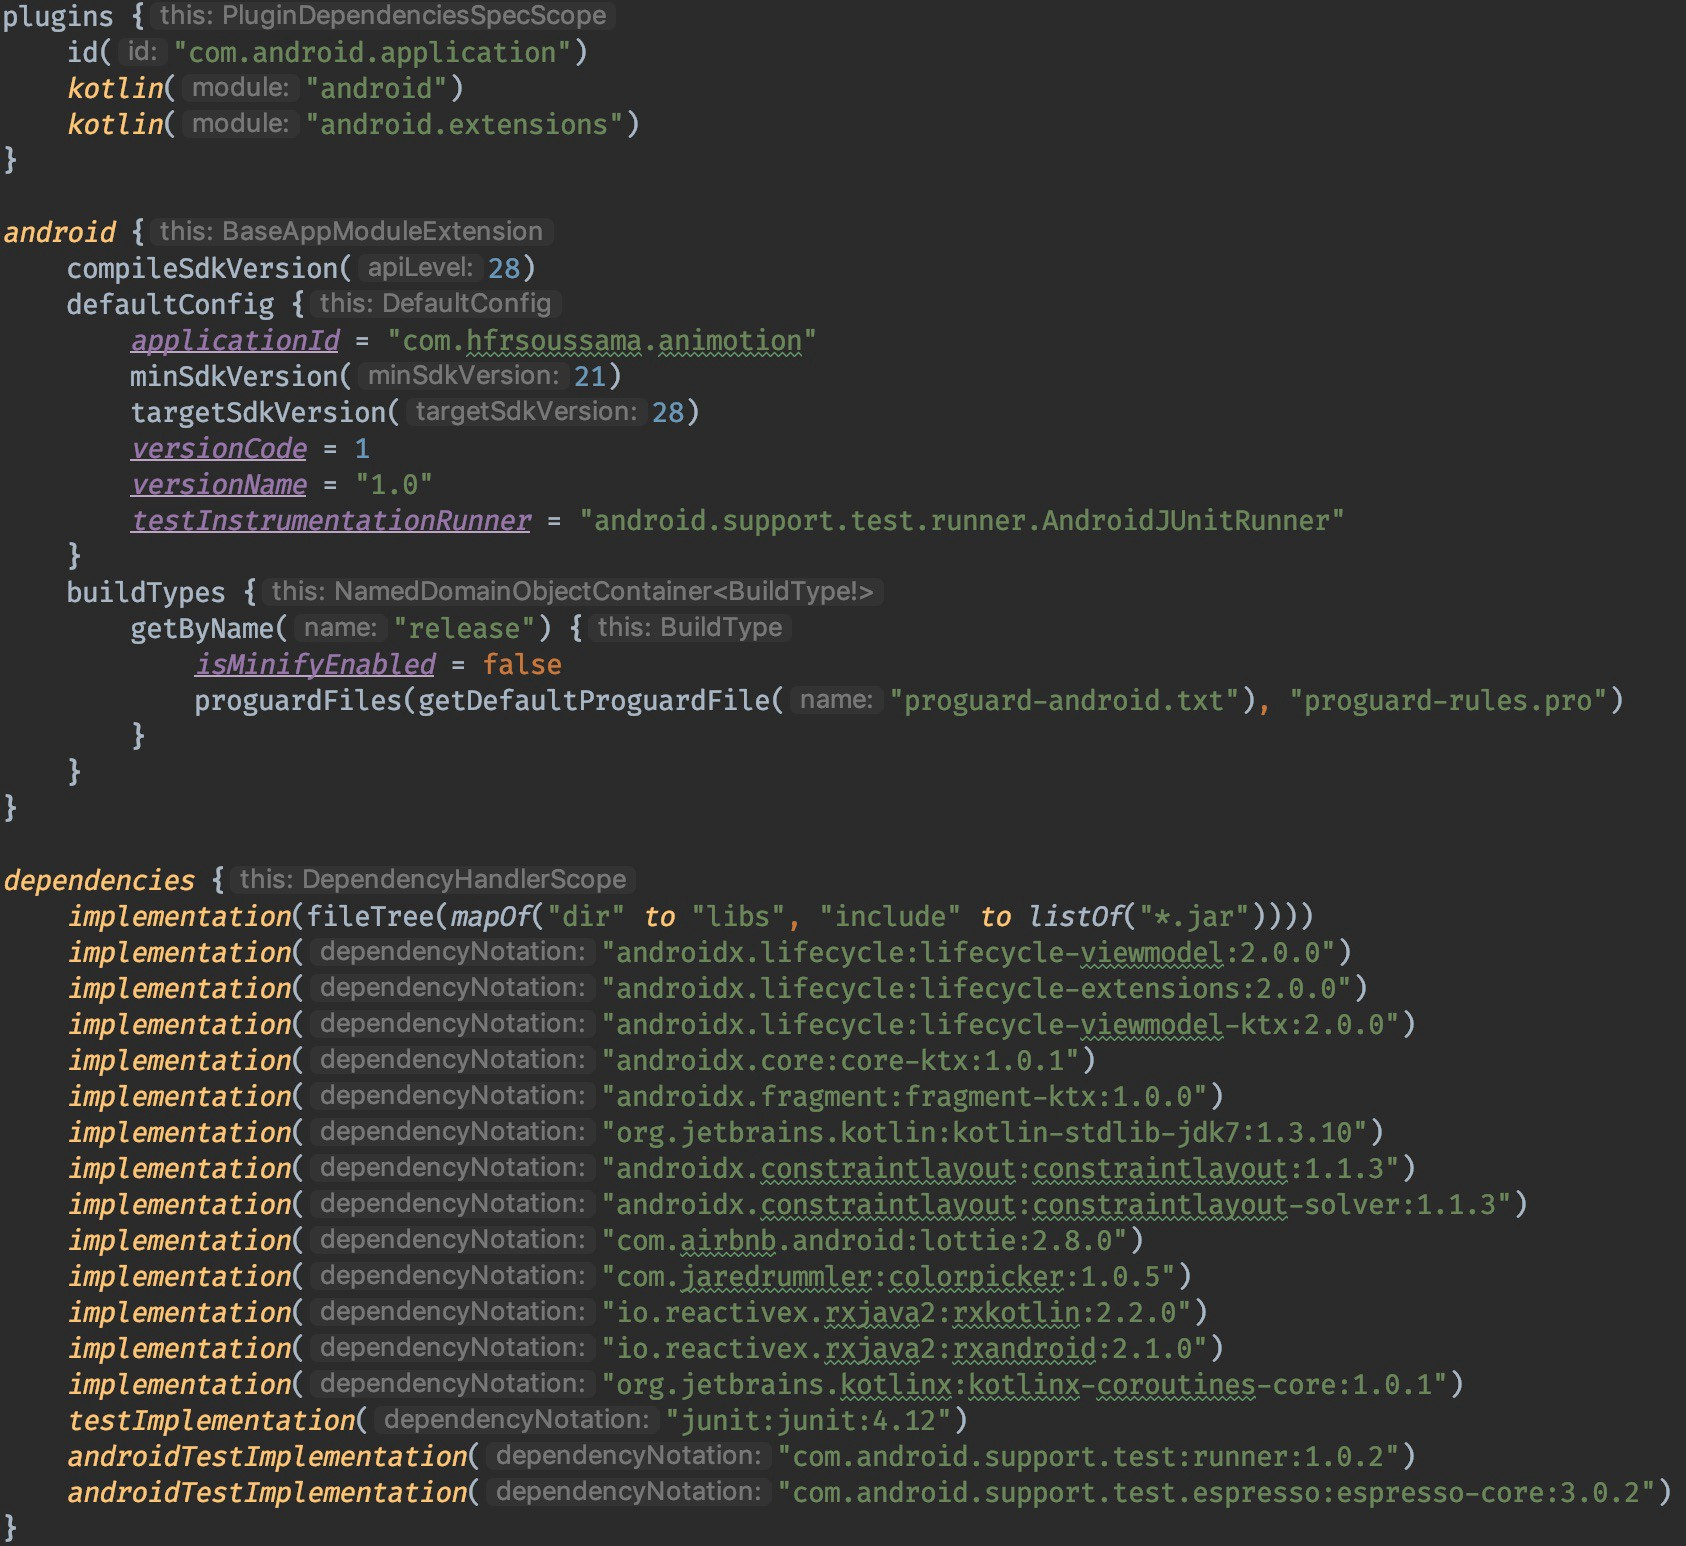 Migrating Android build scripts from Groovy to Kotlin DSL